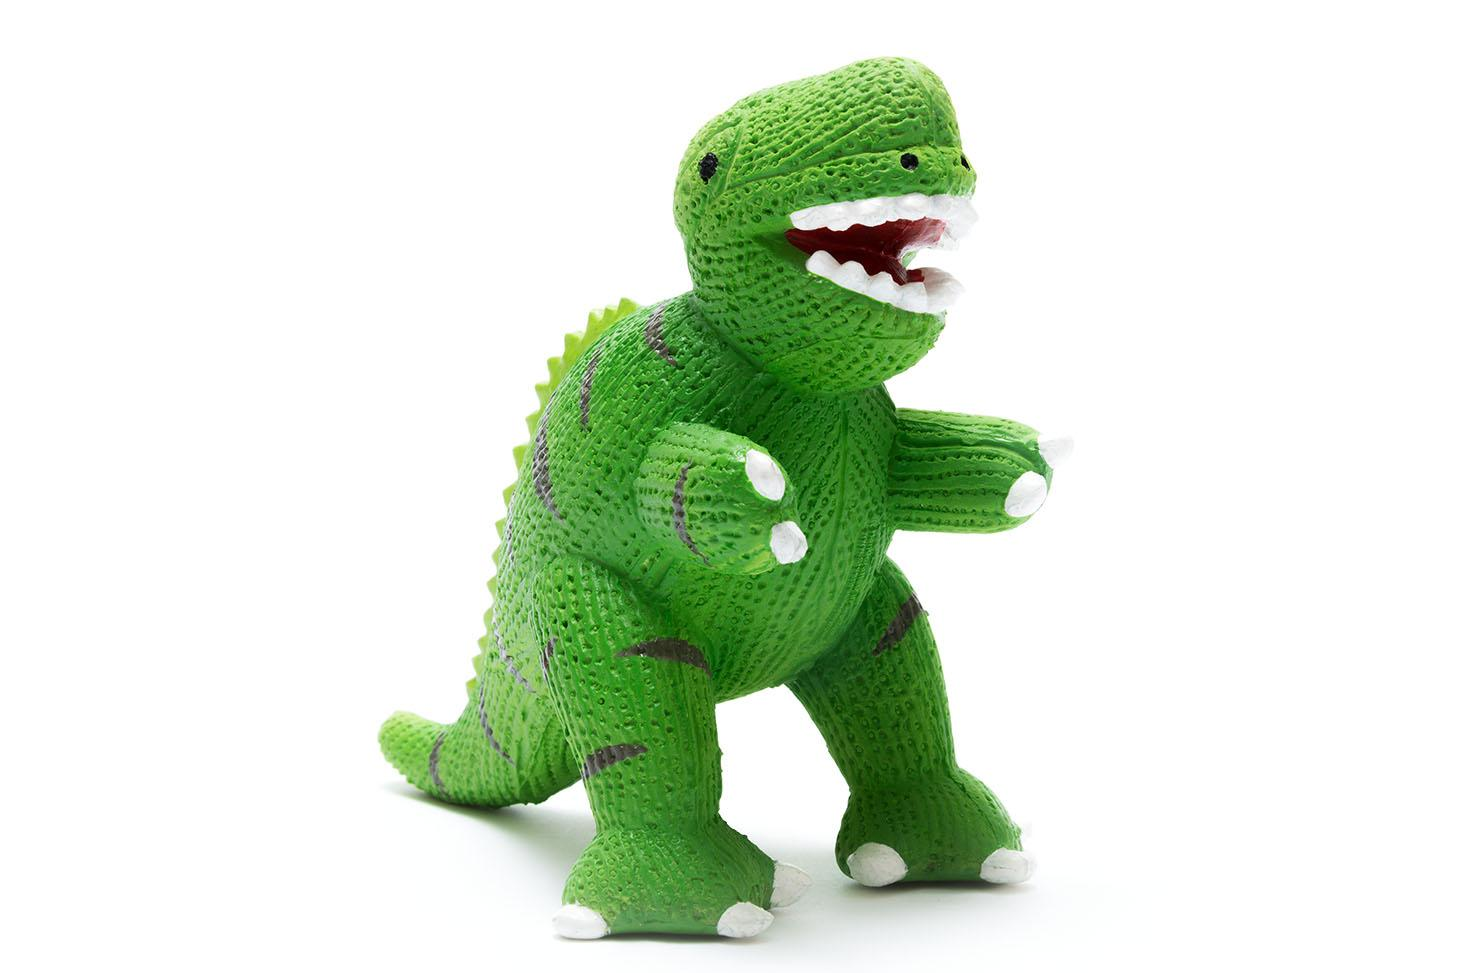 Green natural rubber T rex teether dinosaur toy for babies with textured finish on body